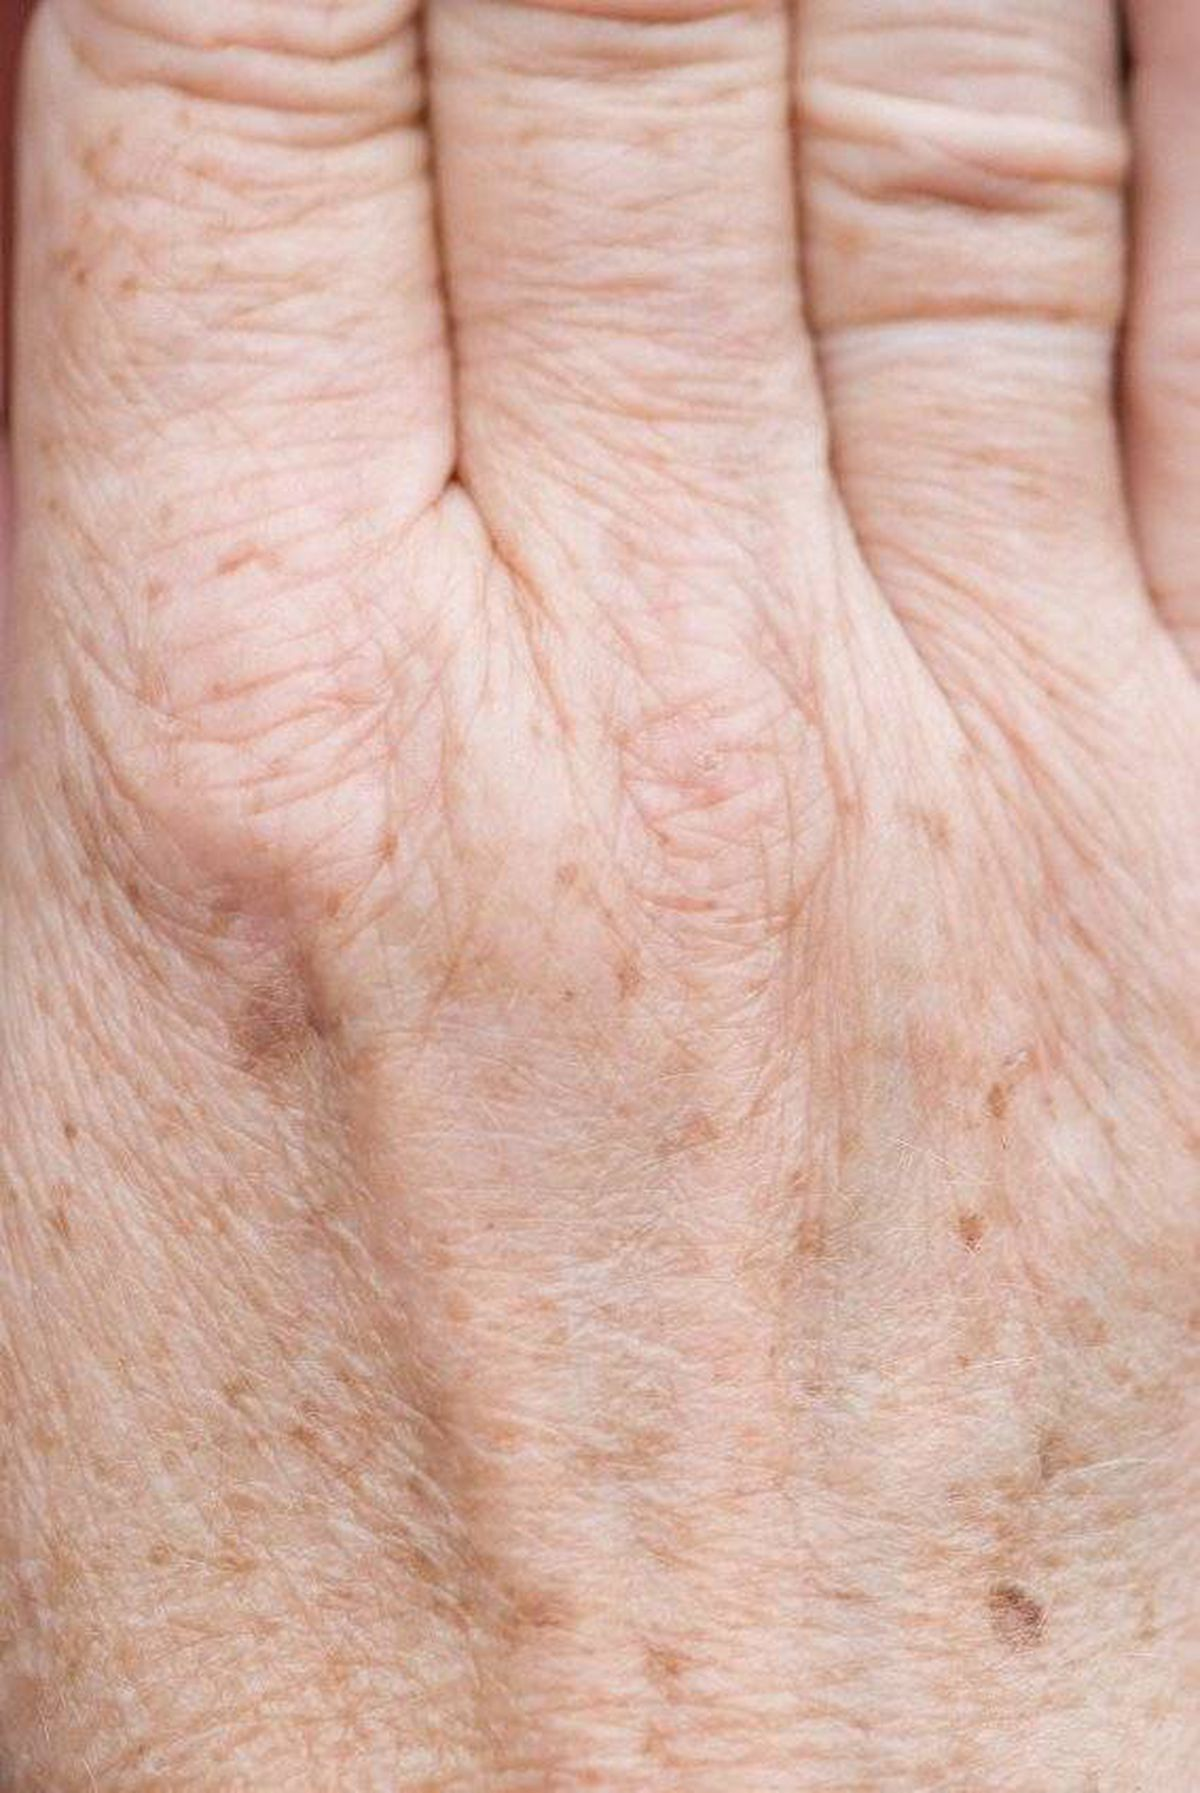 Skin spots that appear with age don't have to be a permanent